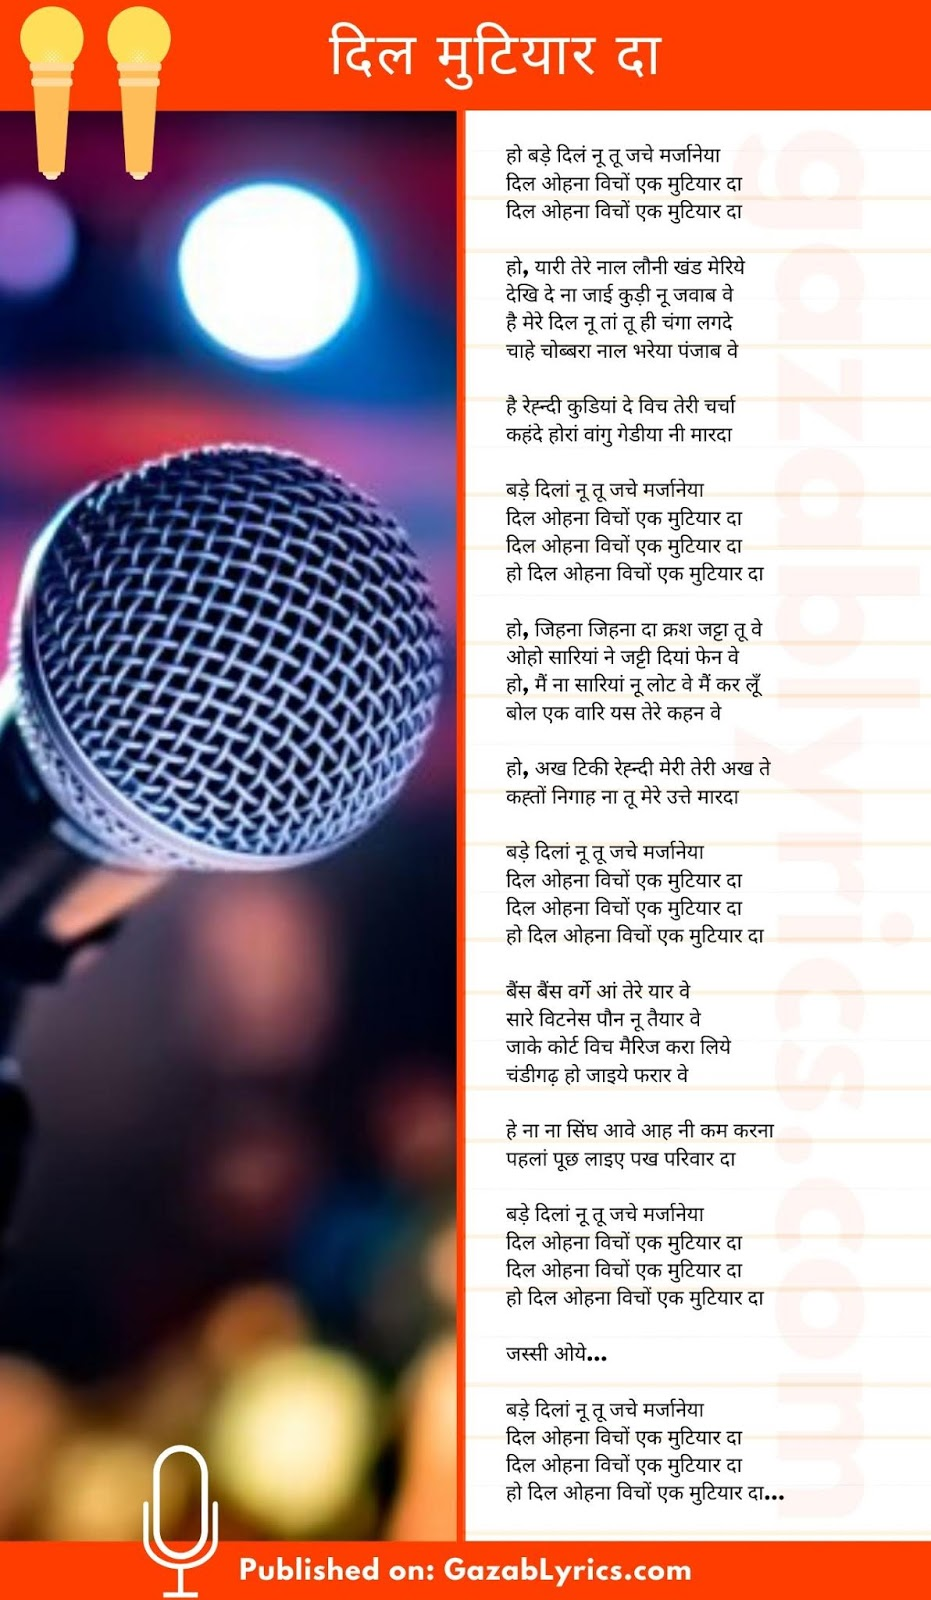 Dil Mutiyar Da song lyrics image